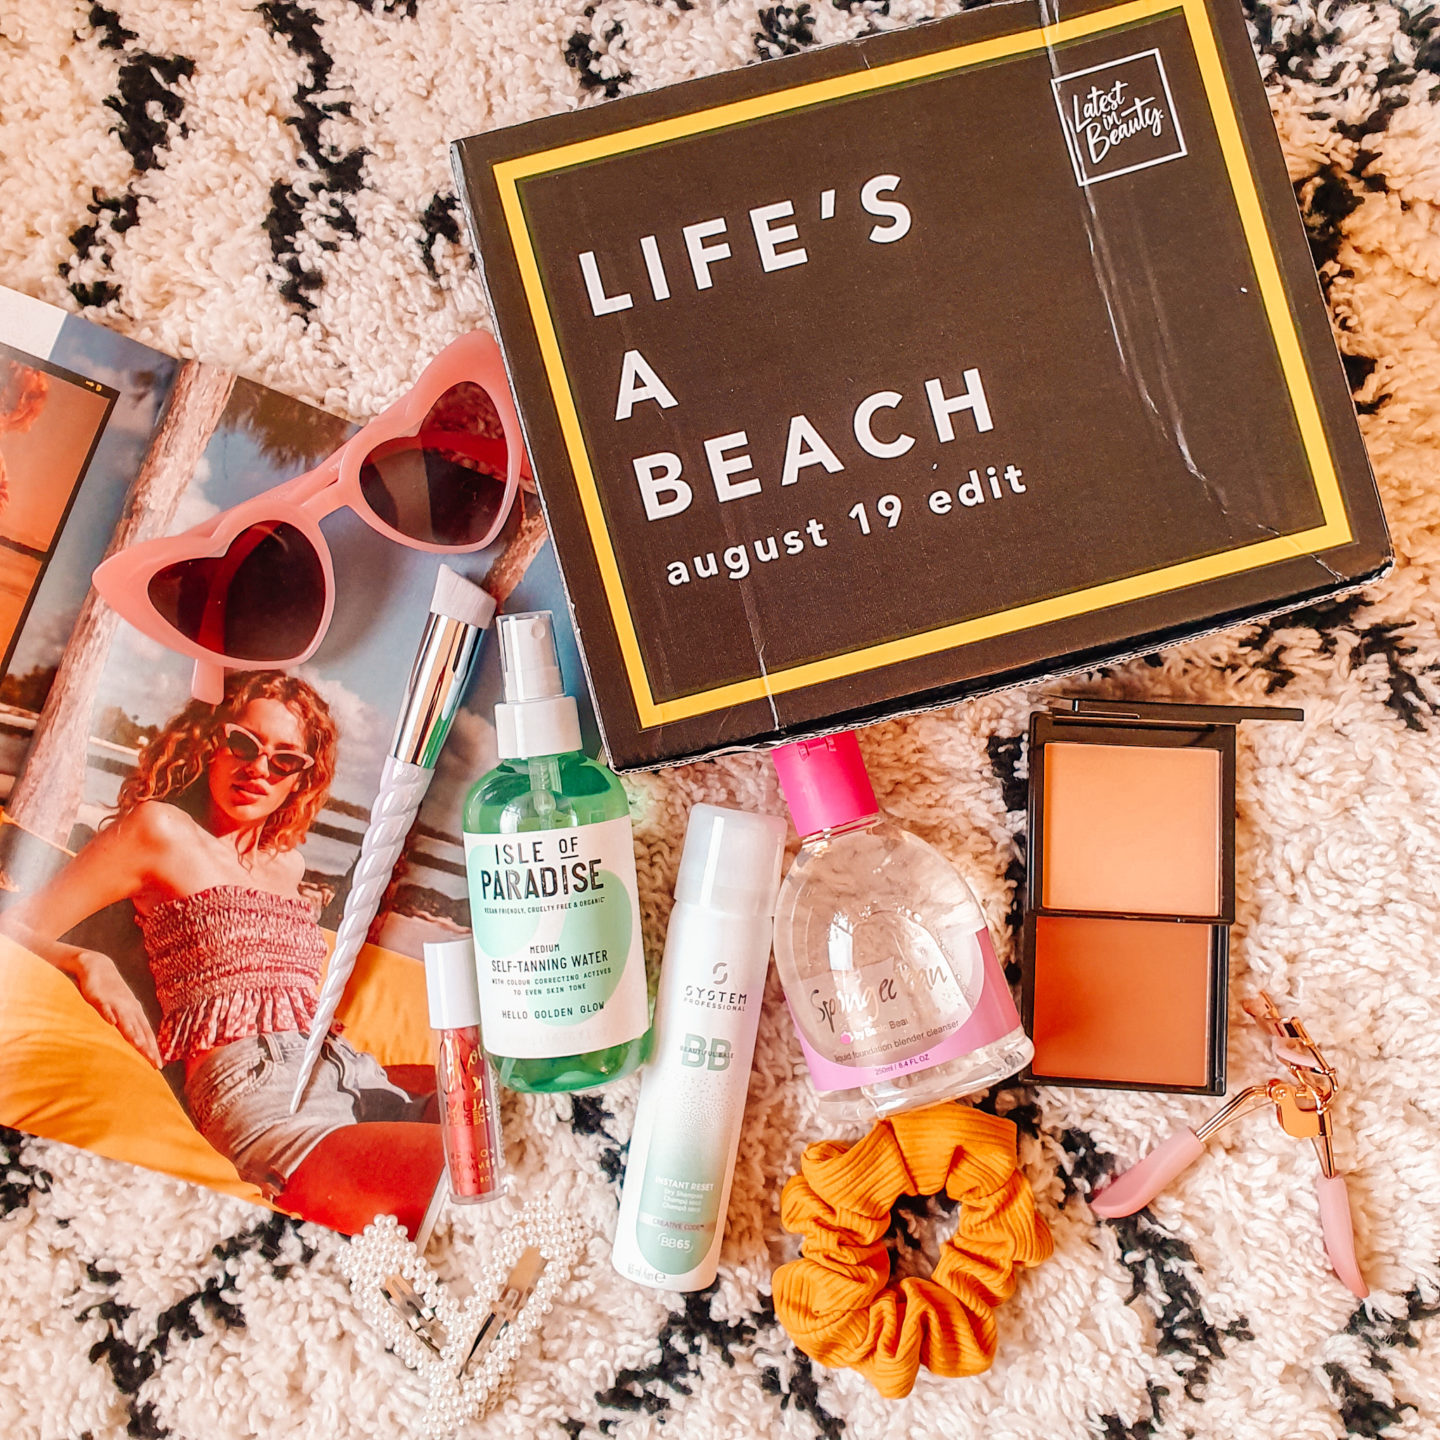 Latest in Beauty - Life's a Beach August 19 Edit